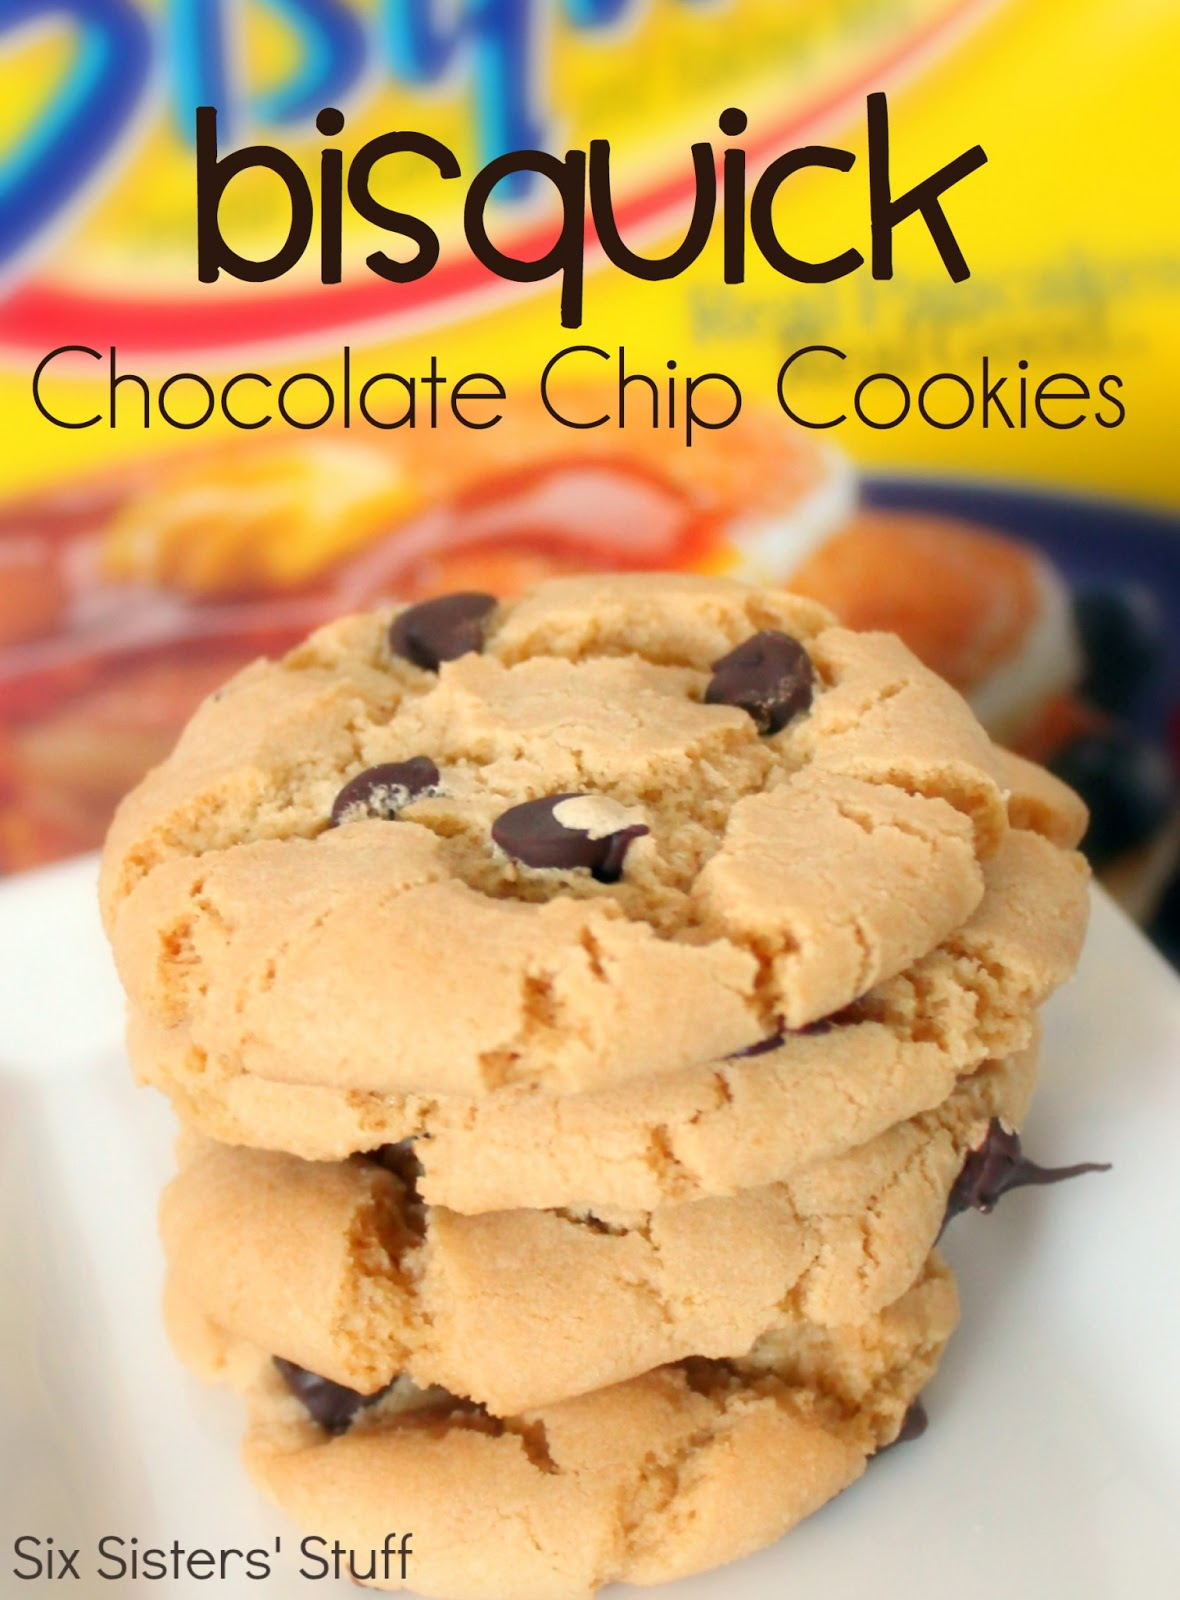 Bisquick chocolate chip cookie recipe - Recipes tips